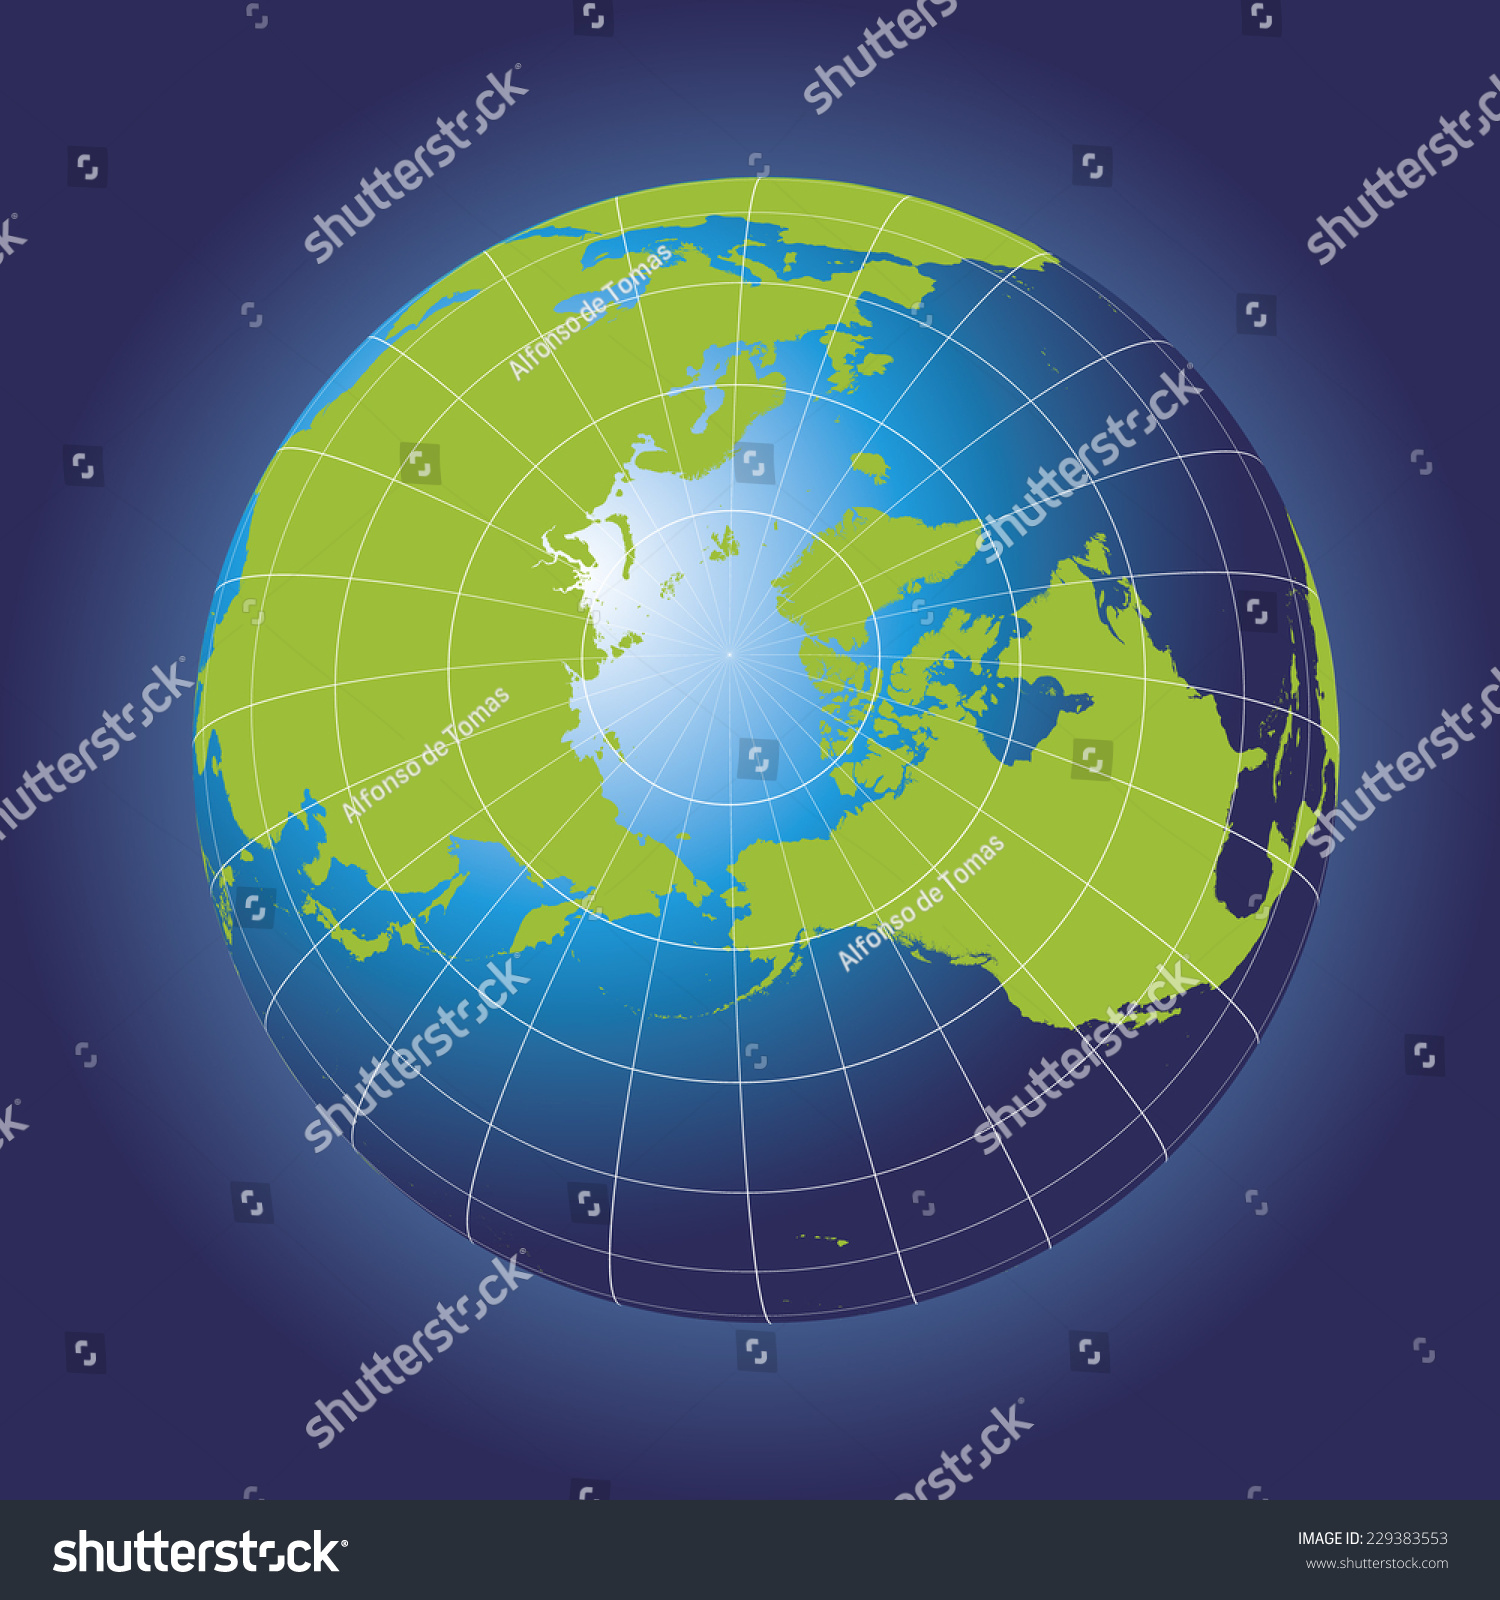 North pole map europe greenland asia stock vector royalty free north pole map europe greenland asia america russia earth globe gumiabroncs Images